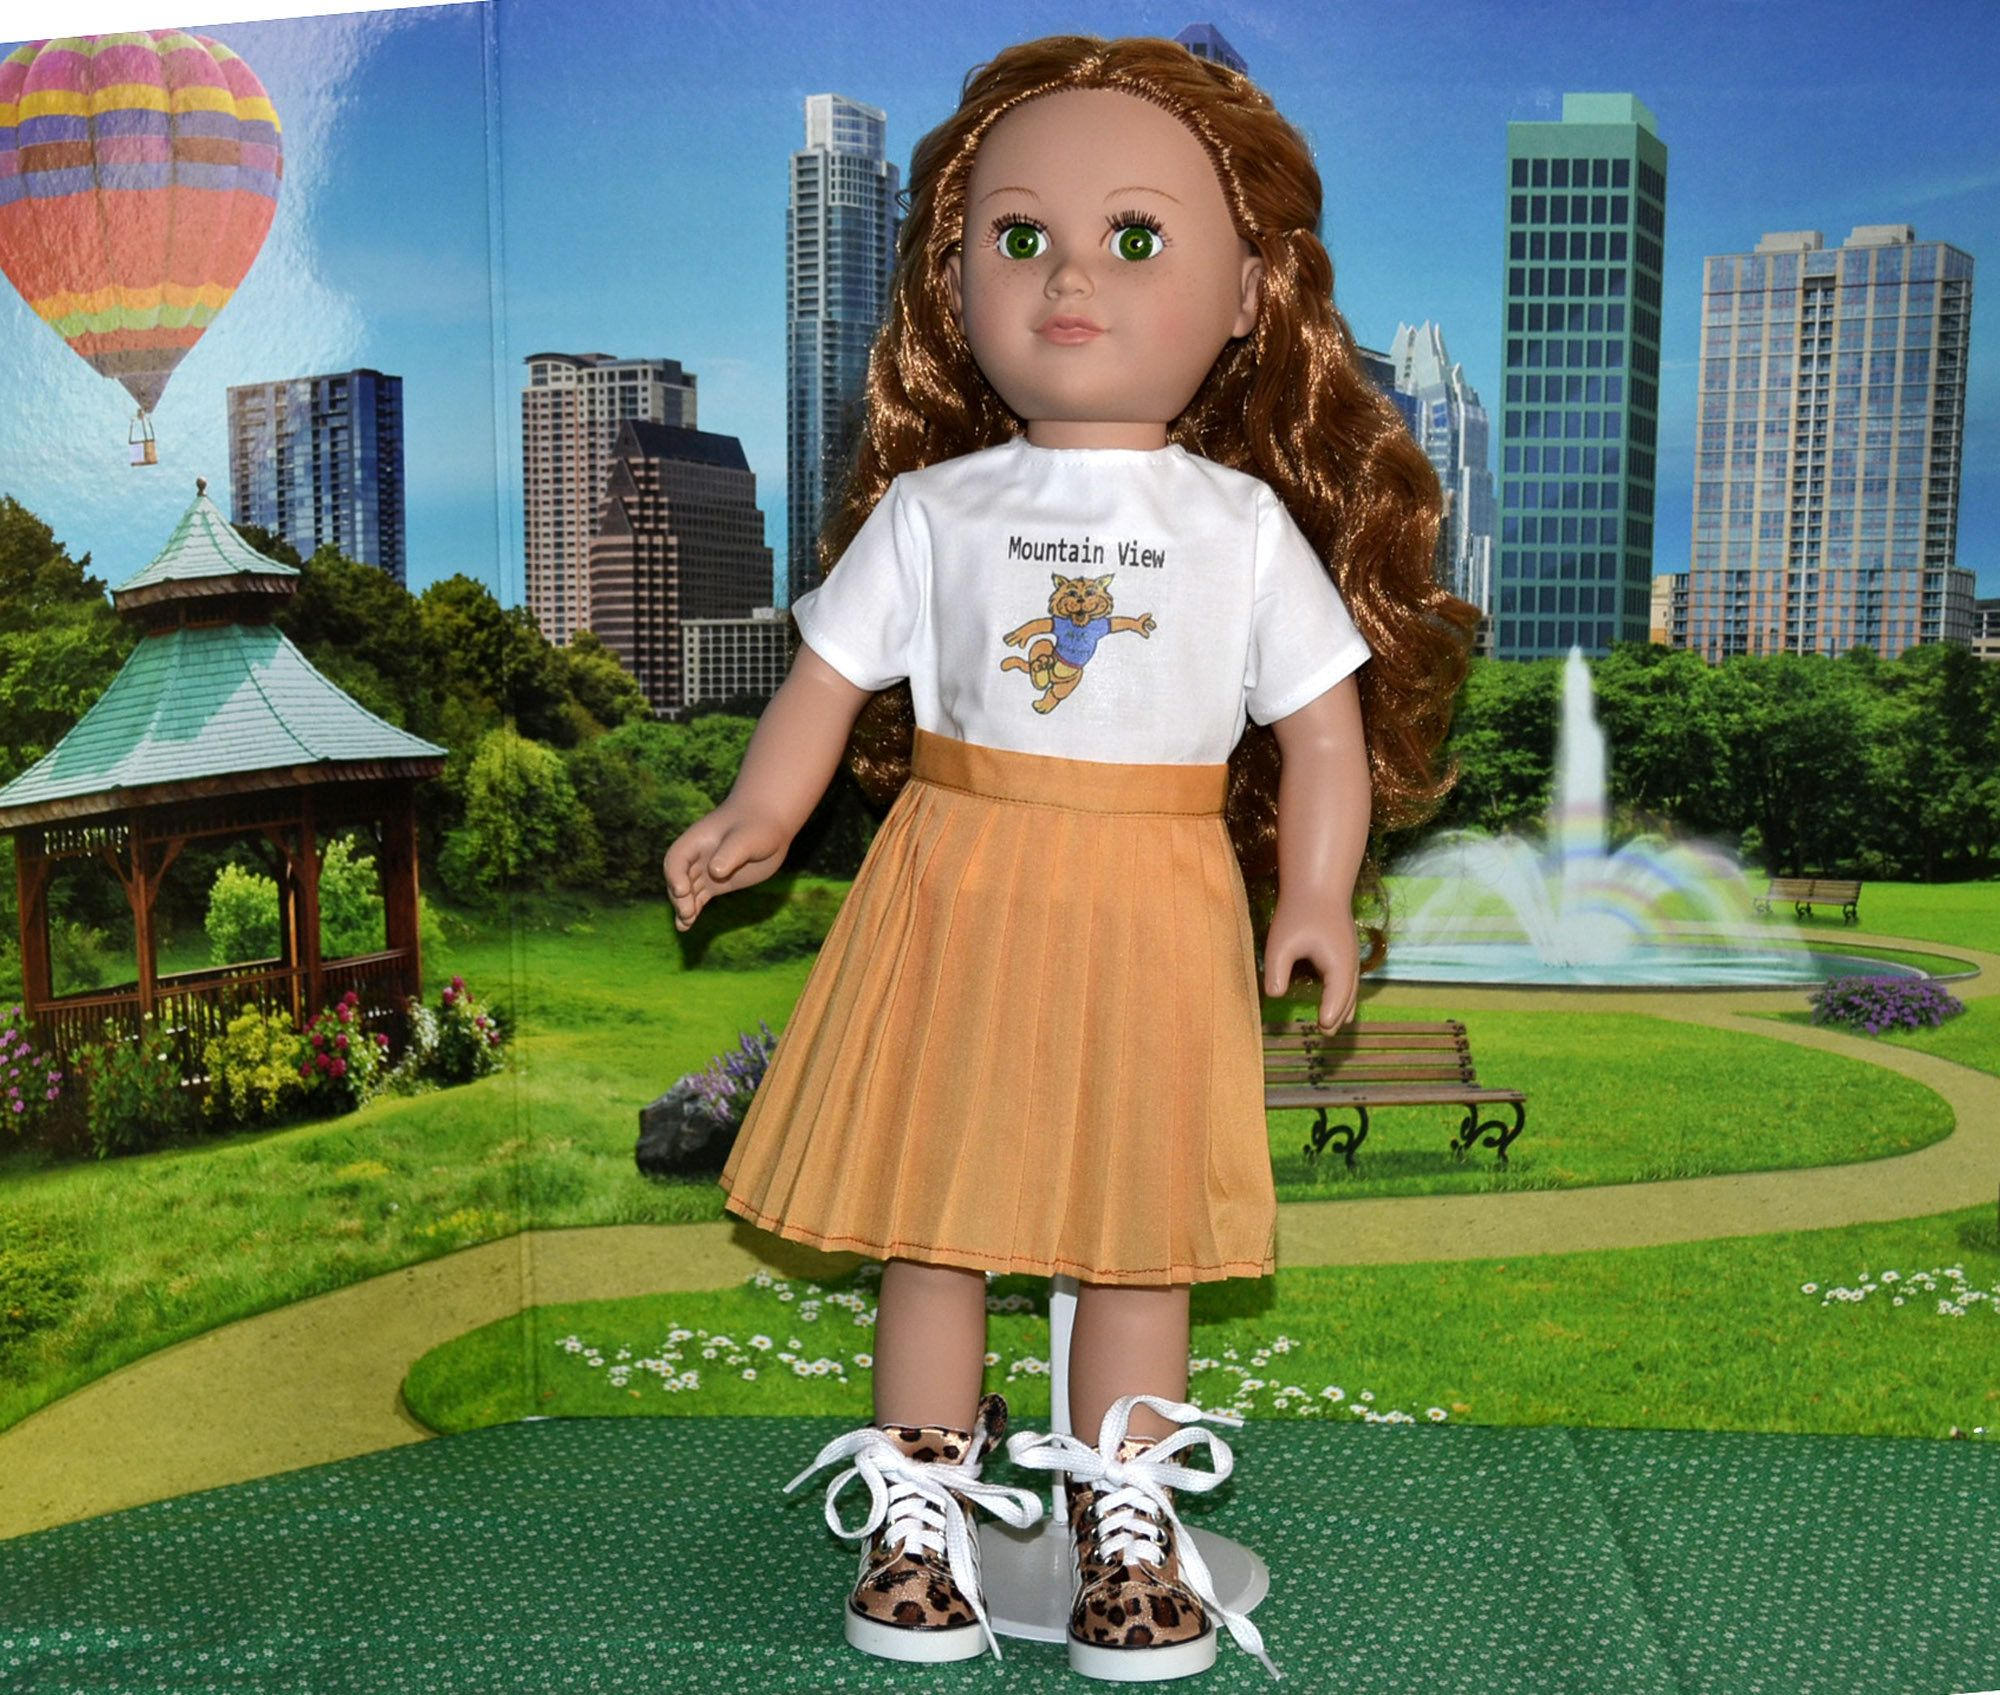 Mountain View Elementary School Cheerleader Outfit for American 18 inch girl doll